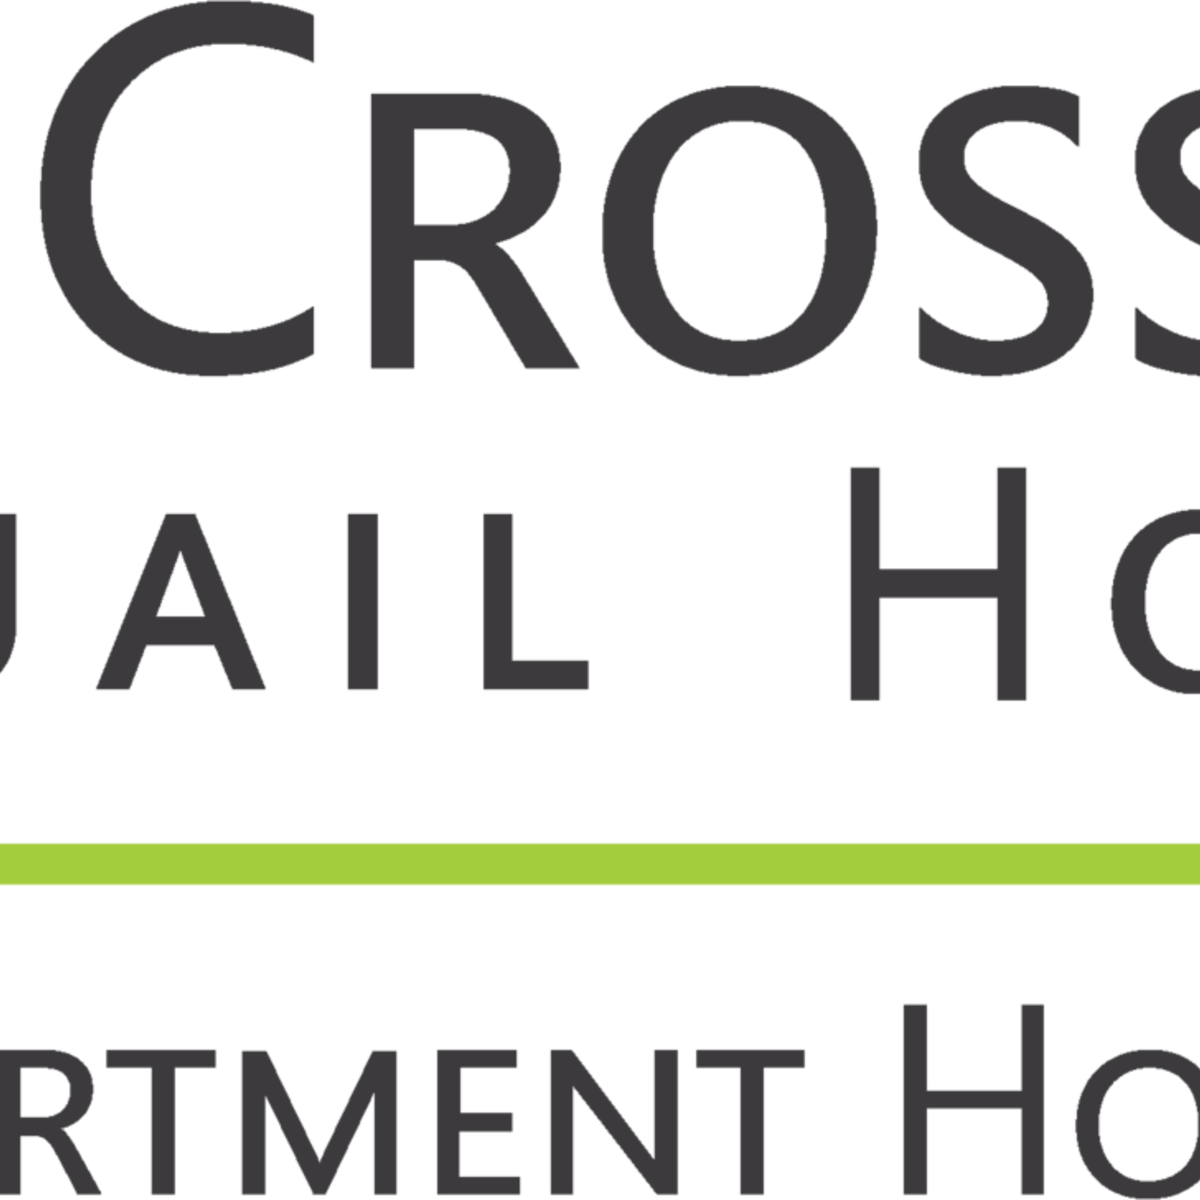 Quail Hollow Apartments: Come Home To More In Charlotte, NC